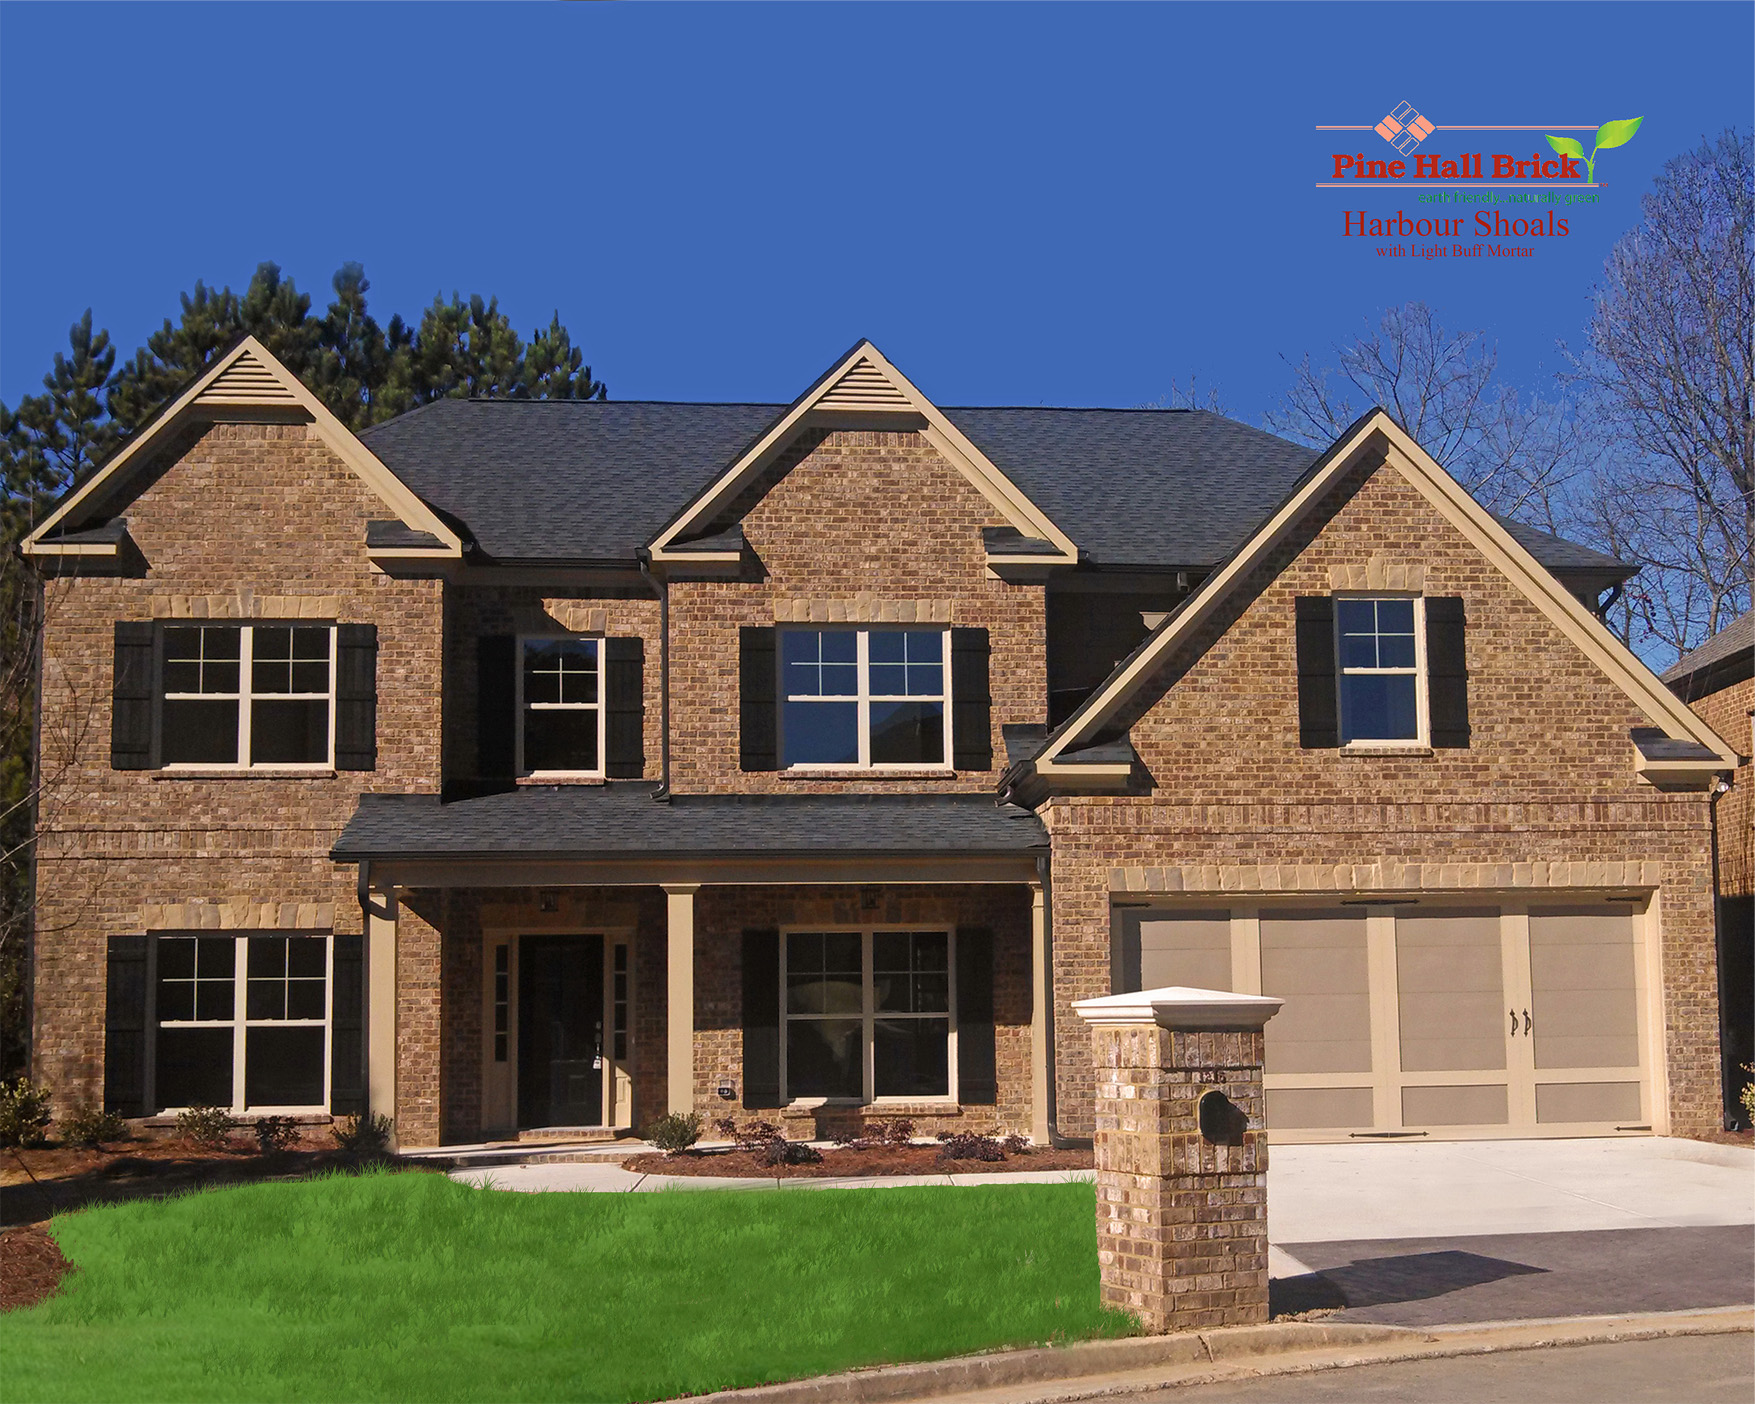 Harbour Shoals  By Pine Hall Brick